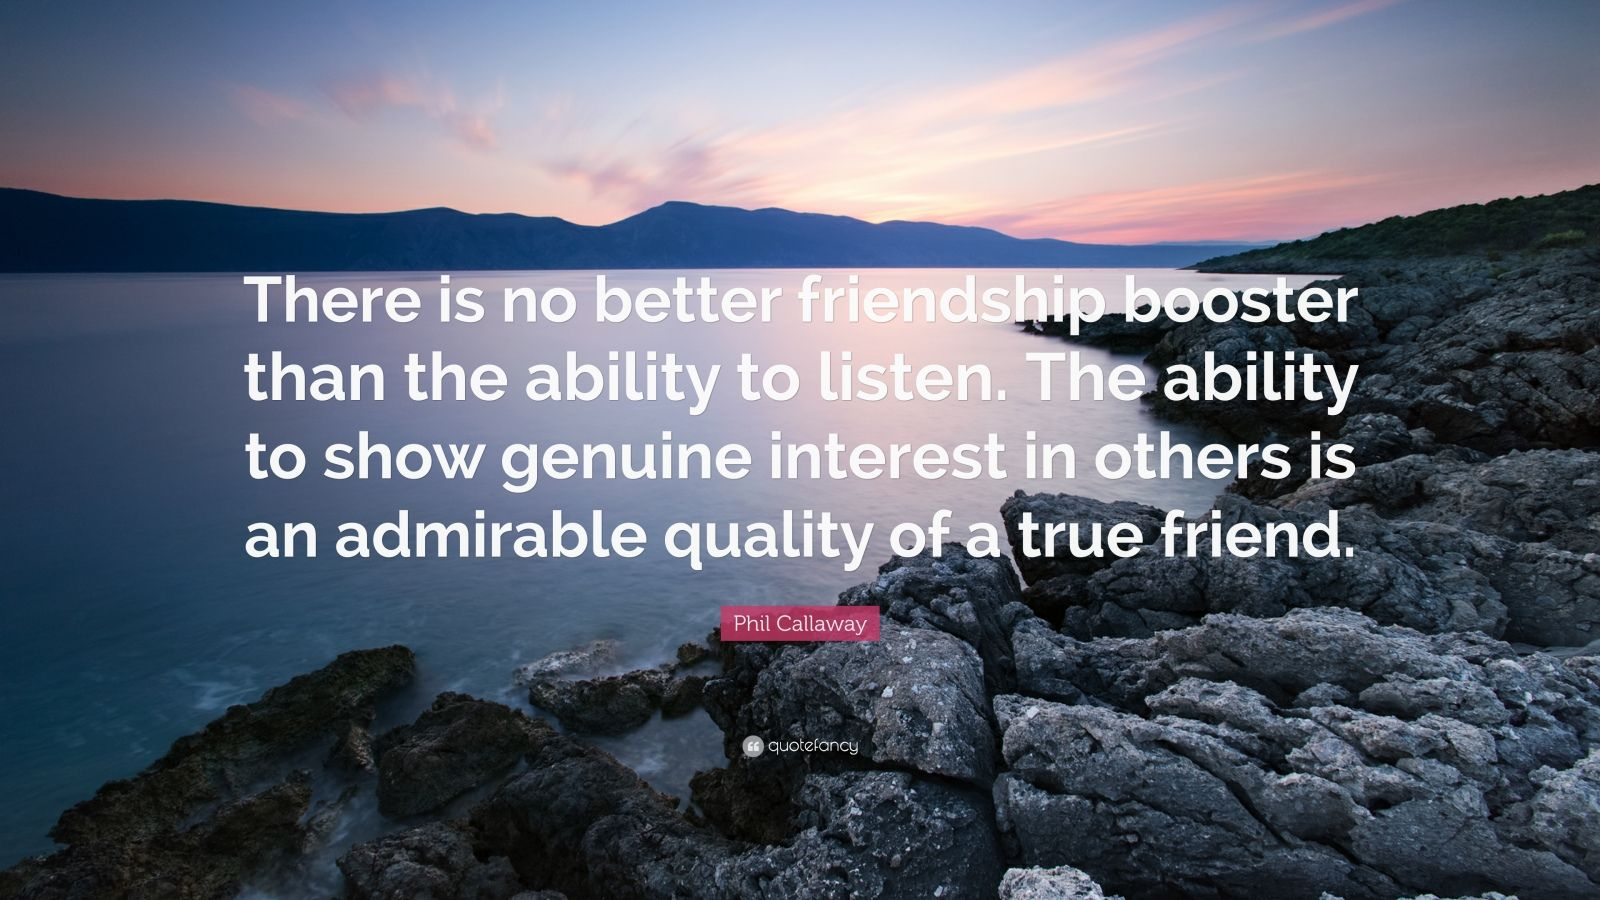 Phil Callaway Quote: There is no better friendship